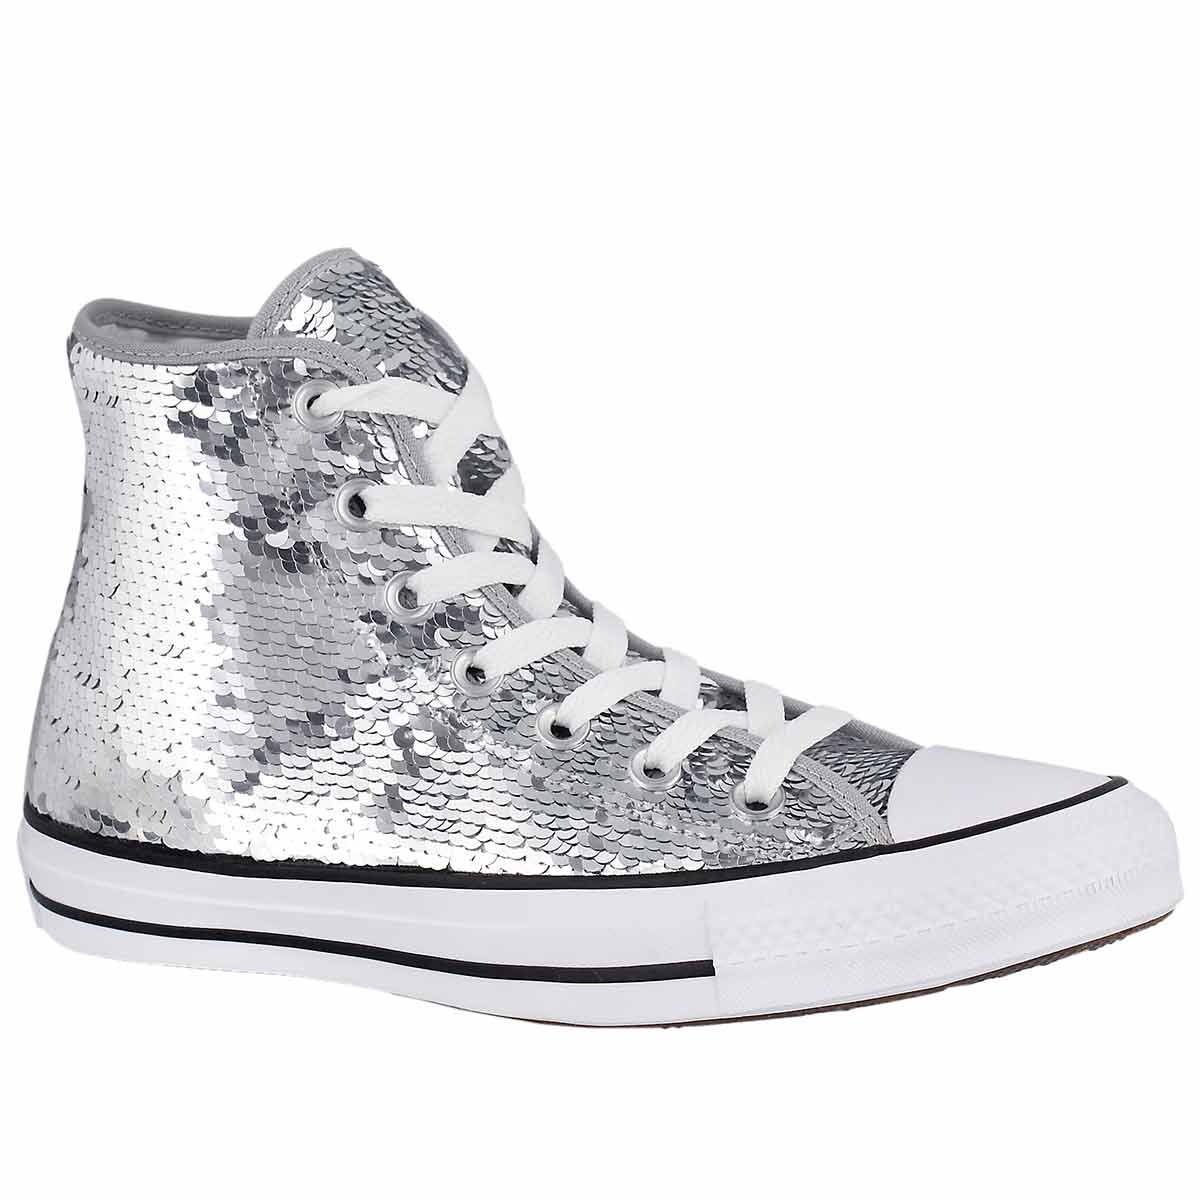 Women's CT ALL STAR CLASSIC SEQUINS silver hi tops